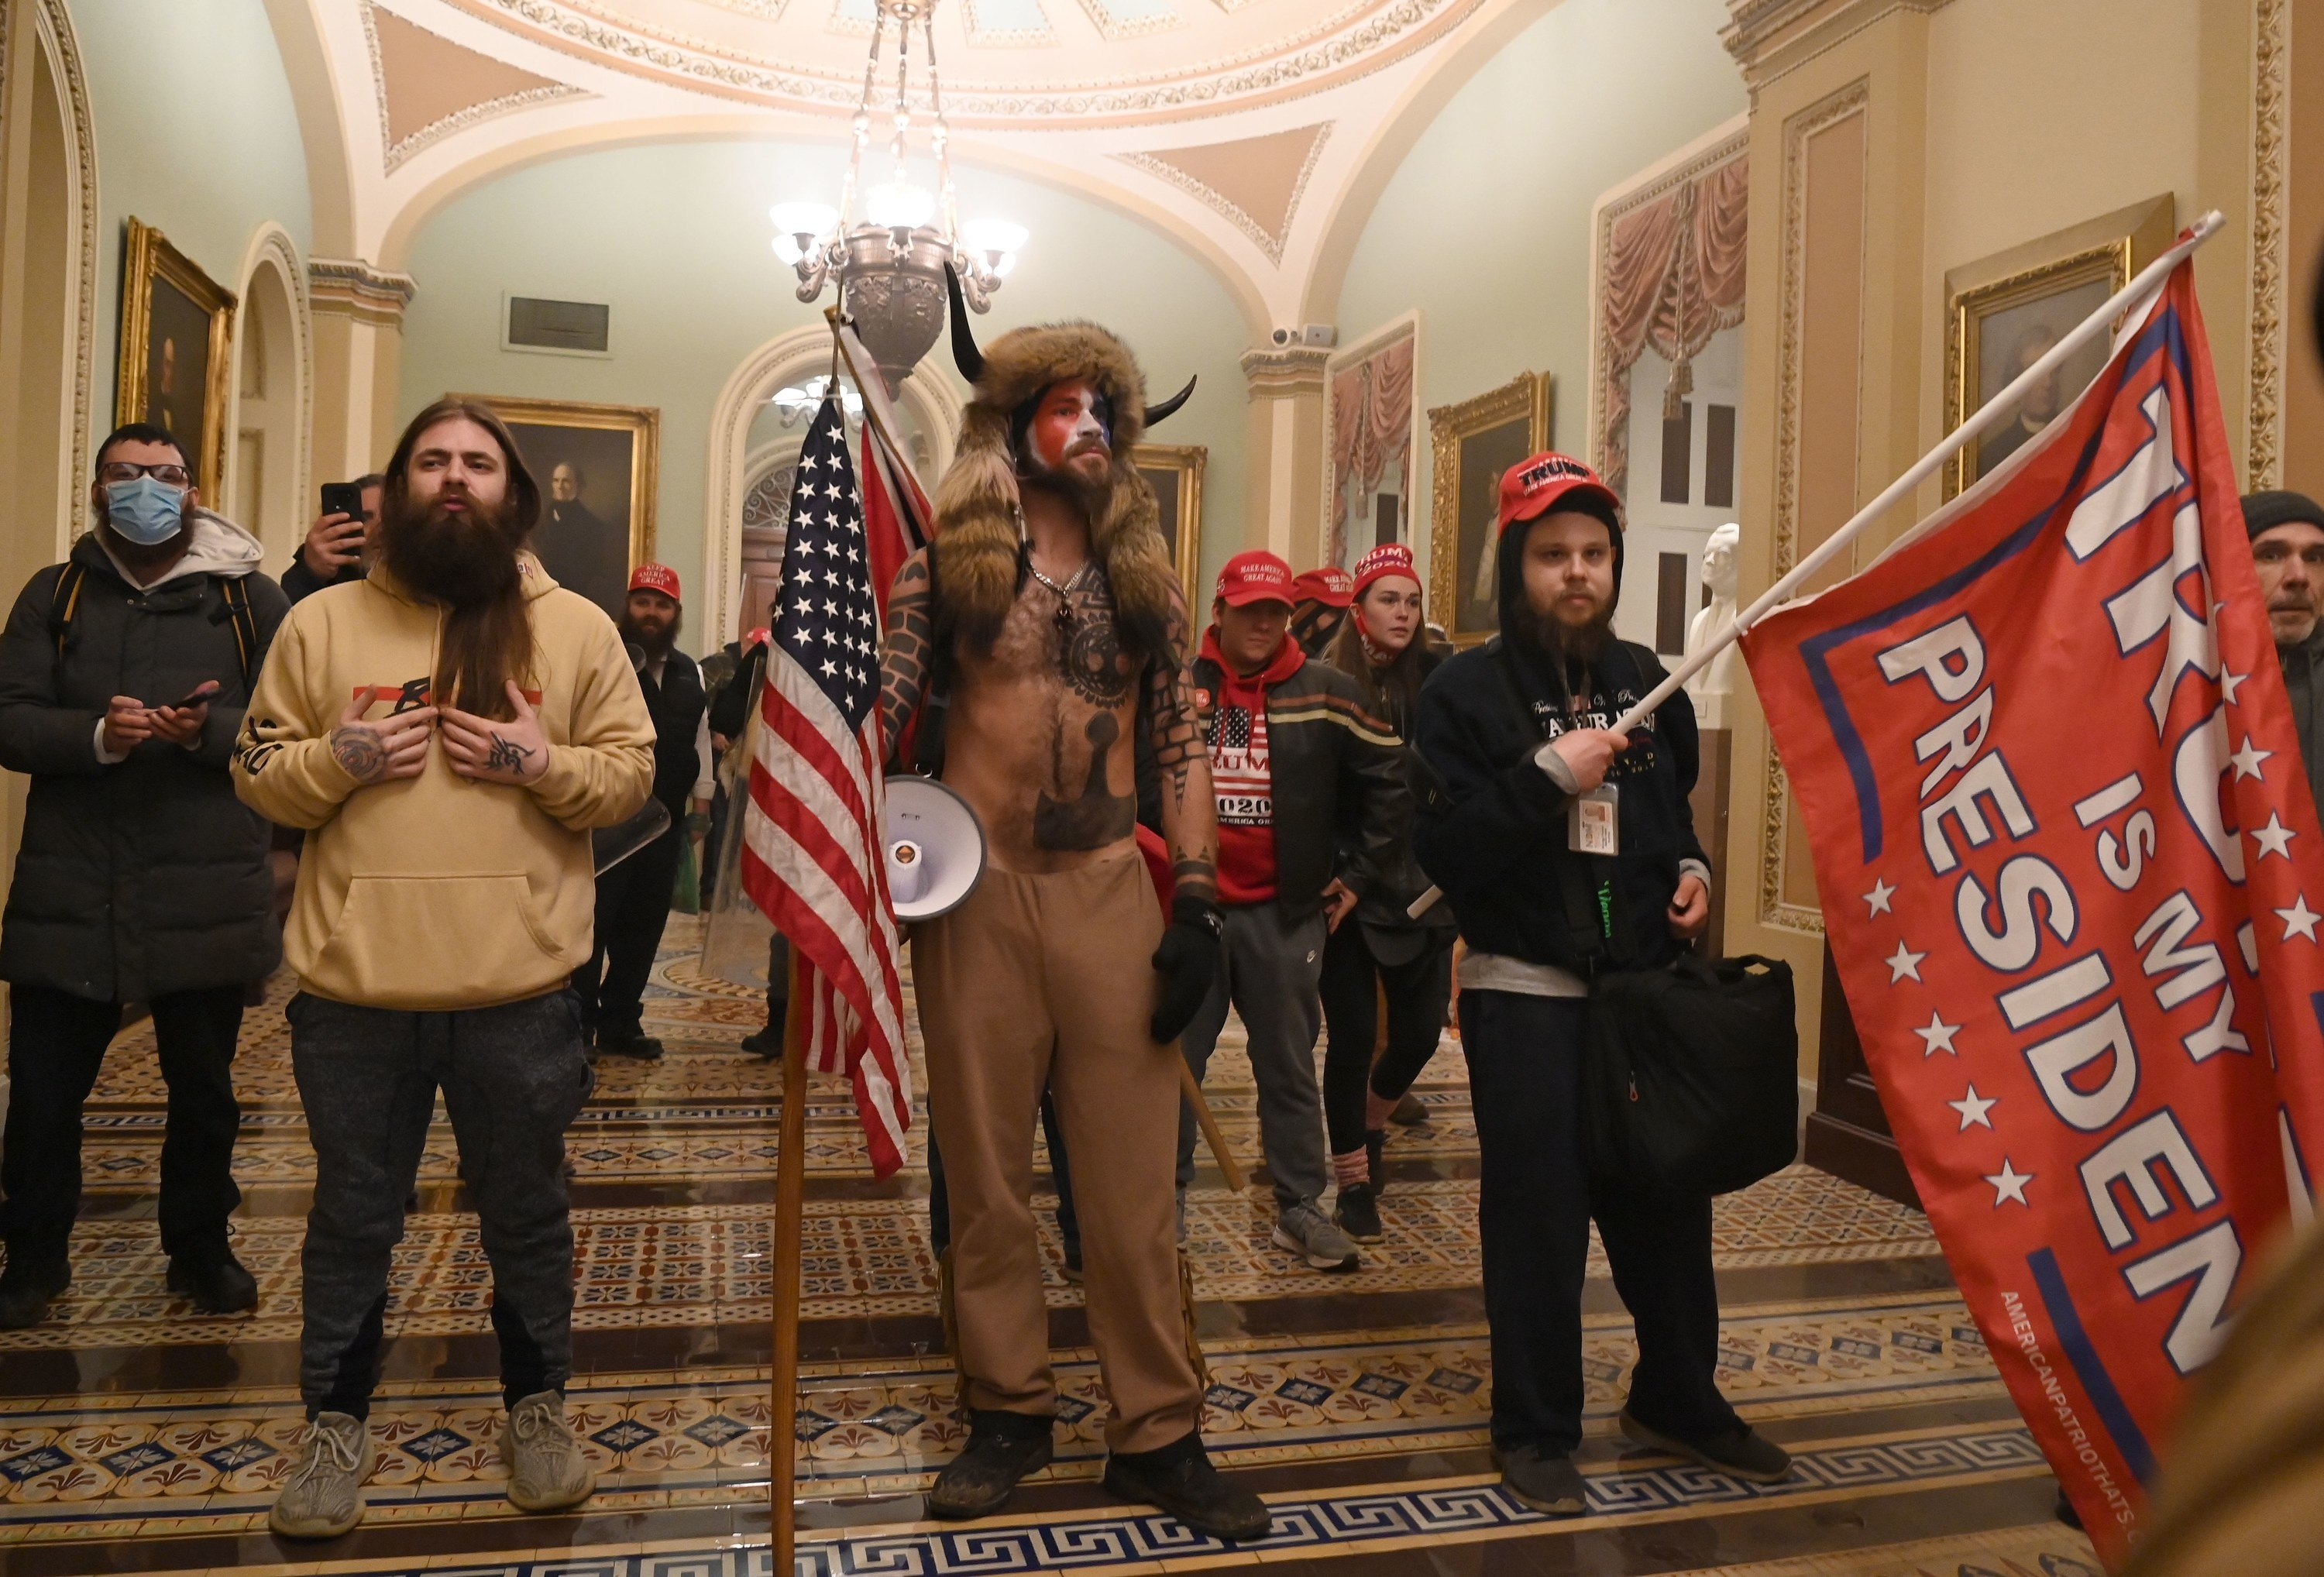 Trump supporters, include one QAnon member, stand inside the Capitol